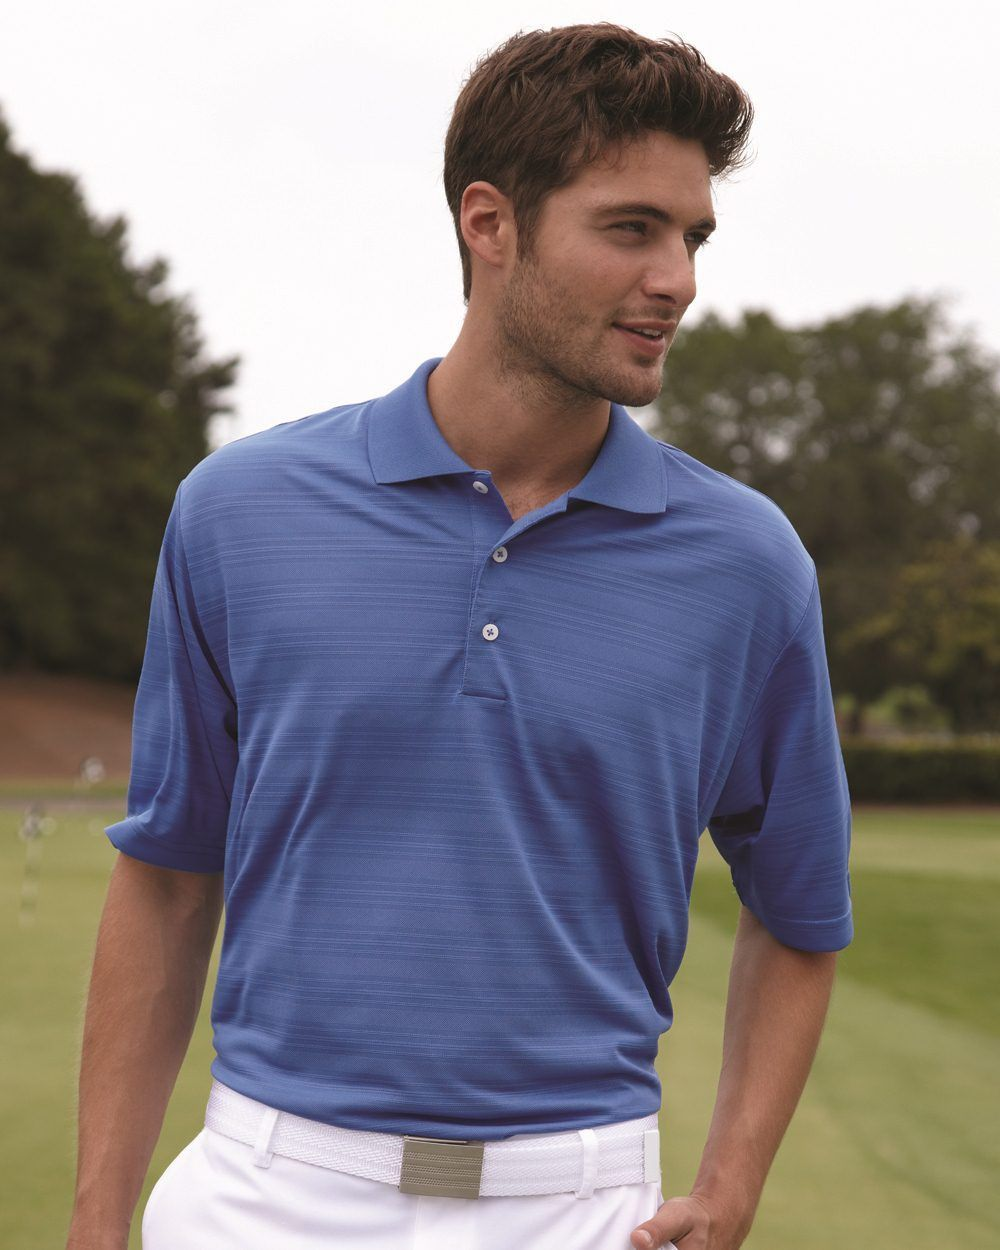 Performance Texture Polo For Men By Adidas Mens Fashion